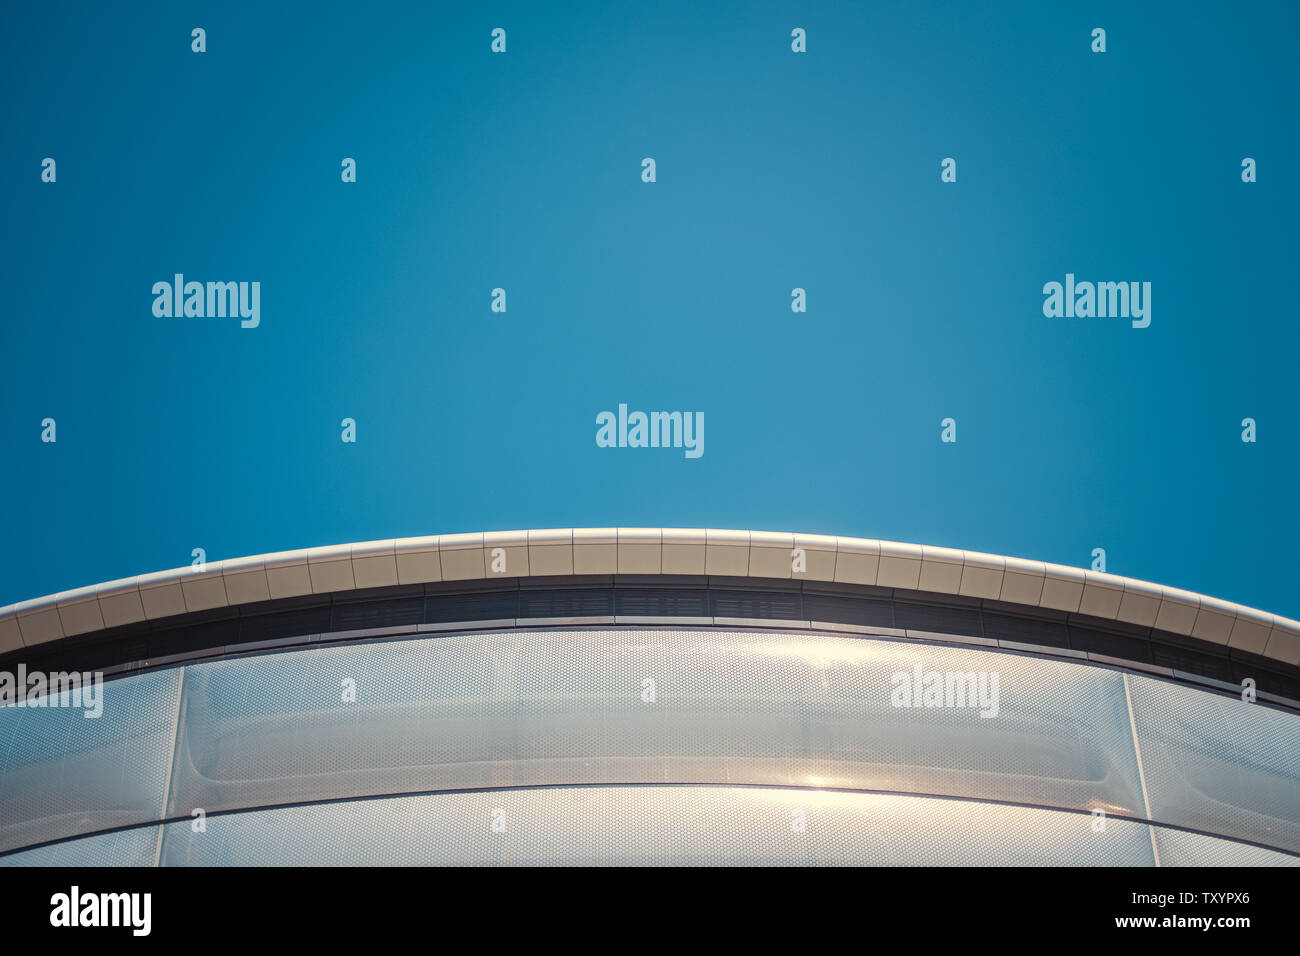 Abstract Detail Of A Curved Section Of A Contemporary Modernist Building With Copy Space Stock Photo